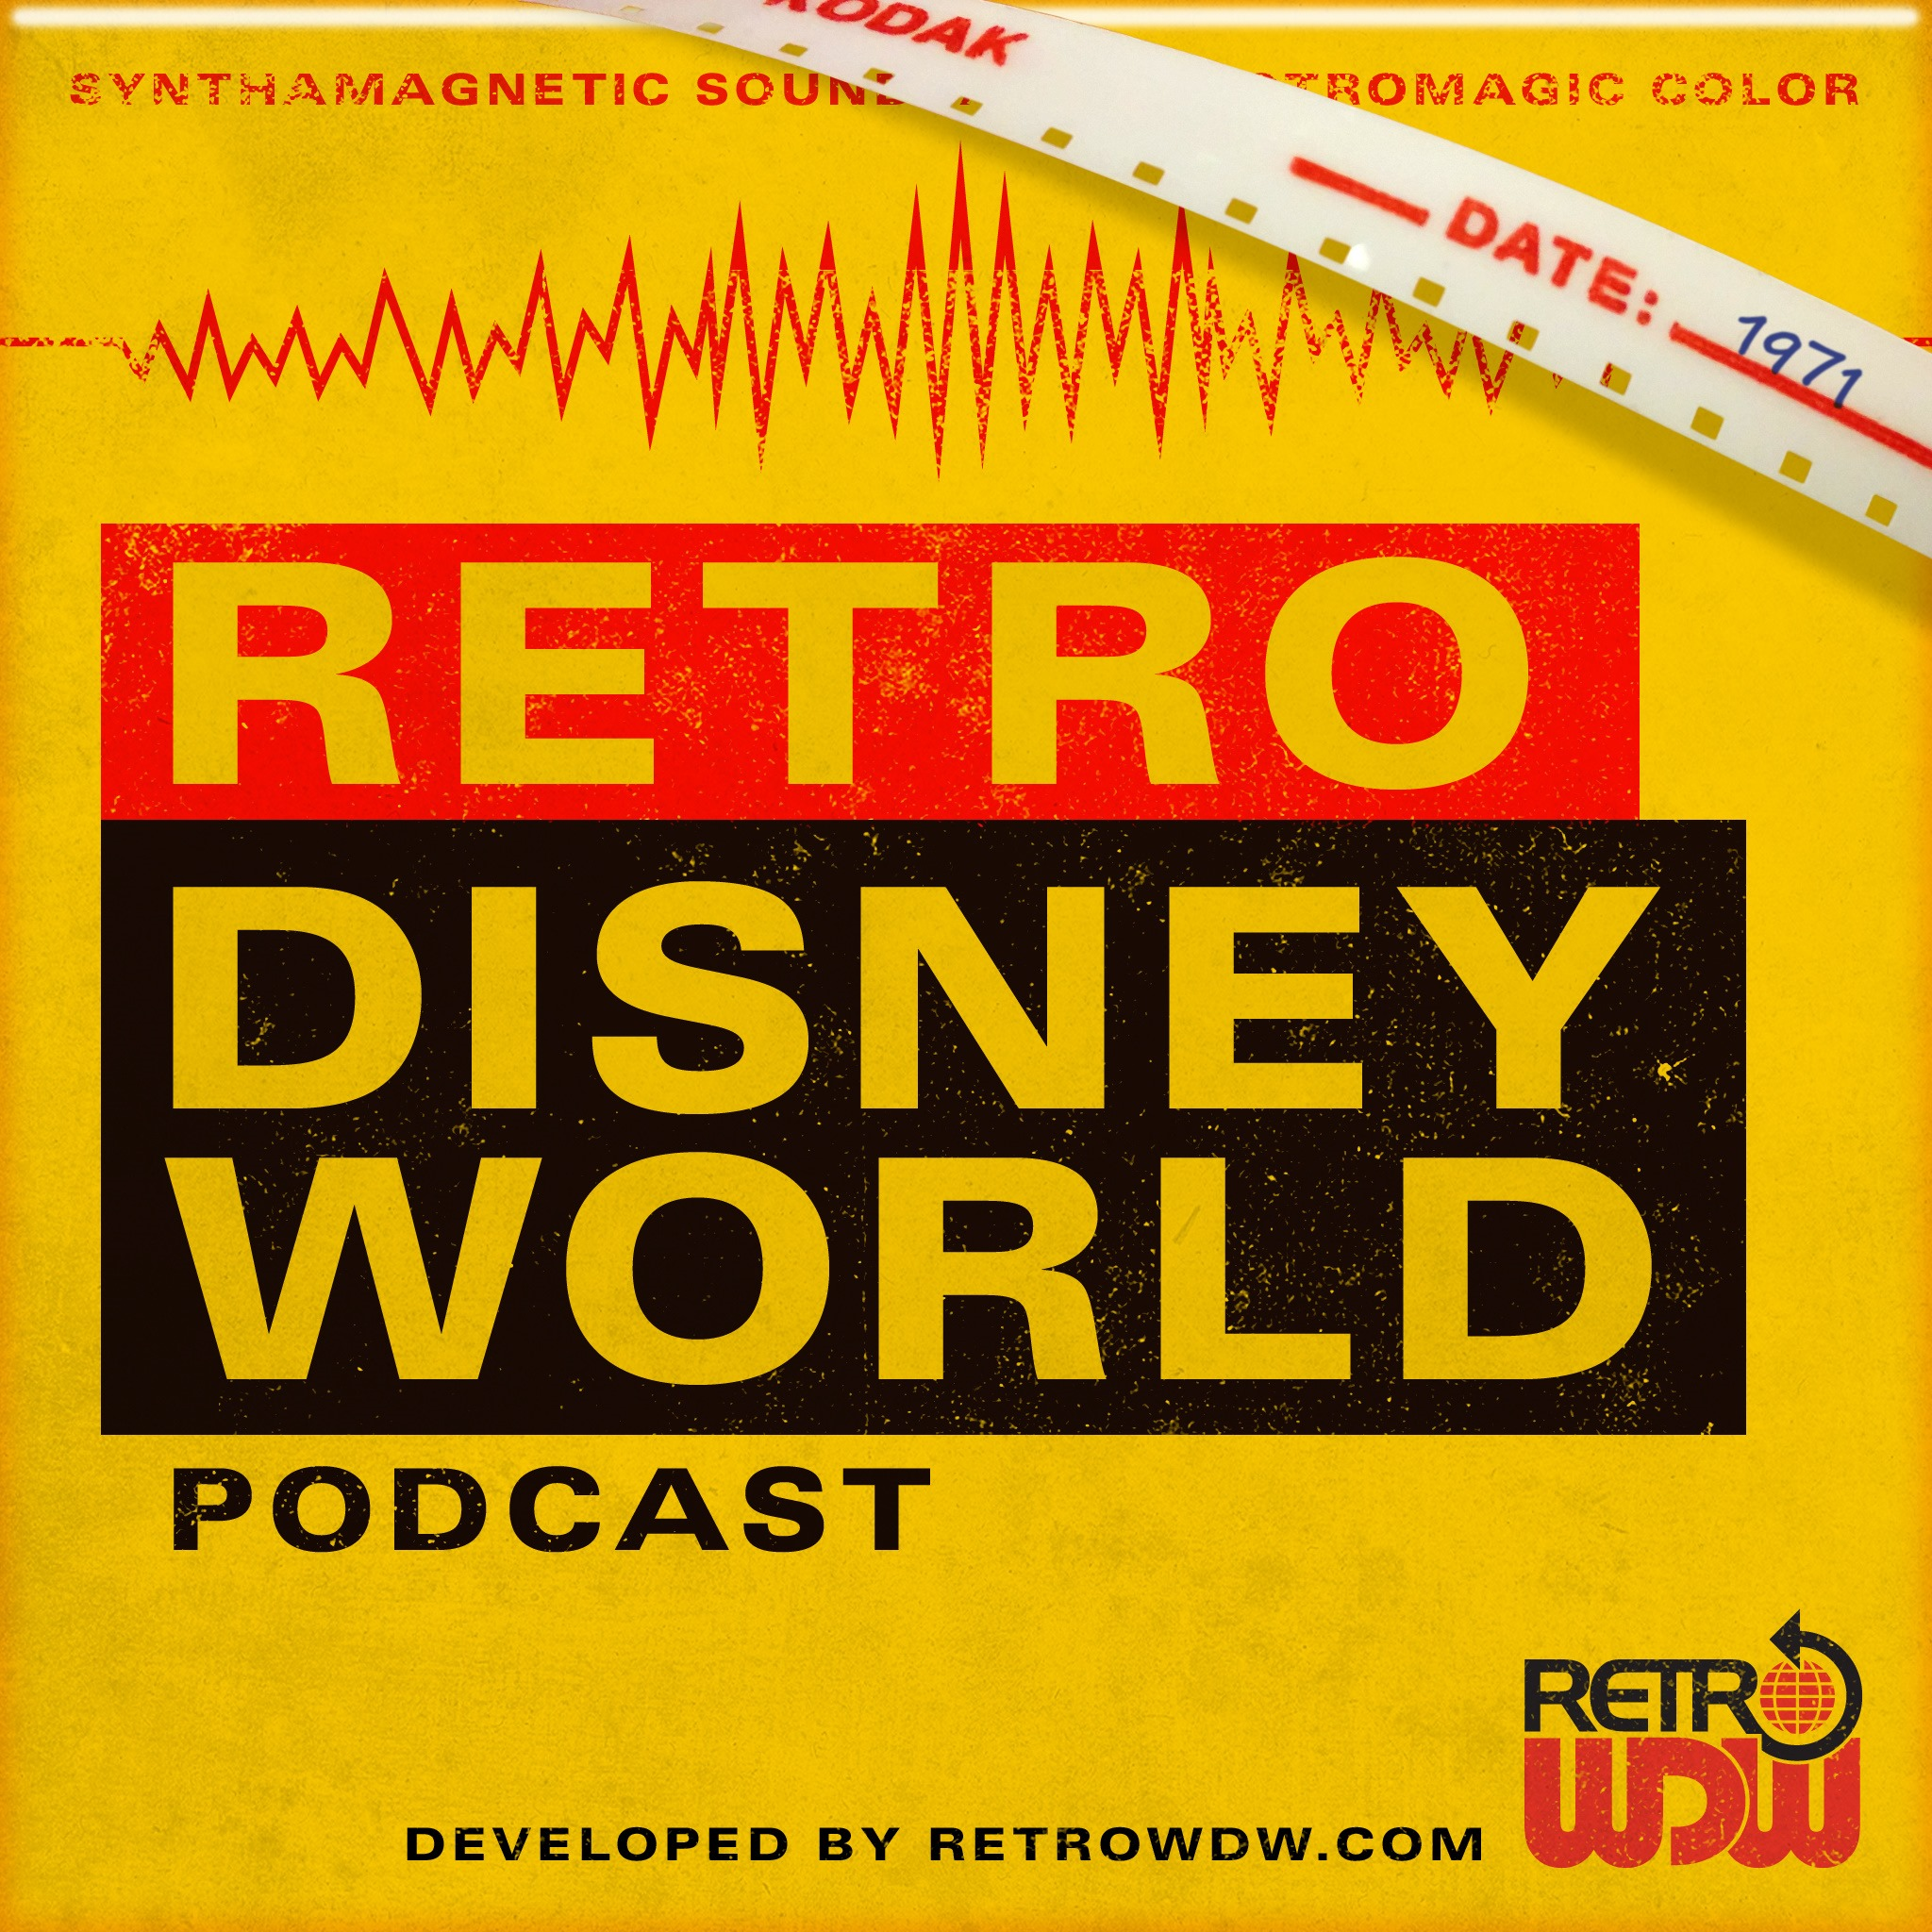 Retro Disney World Podcast